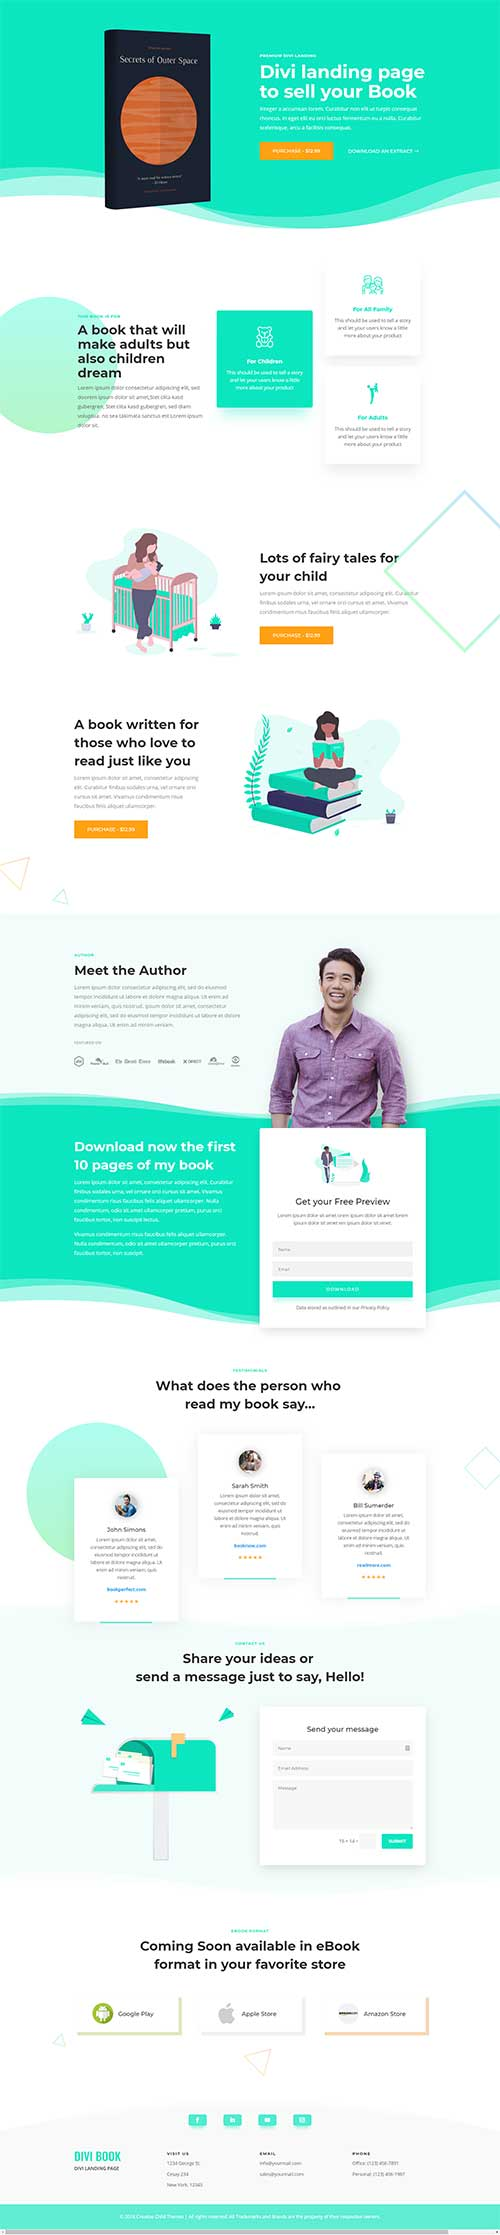 divi ebook landing page layout